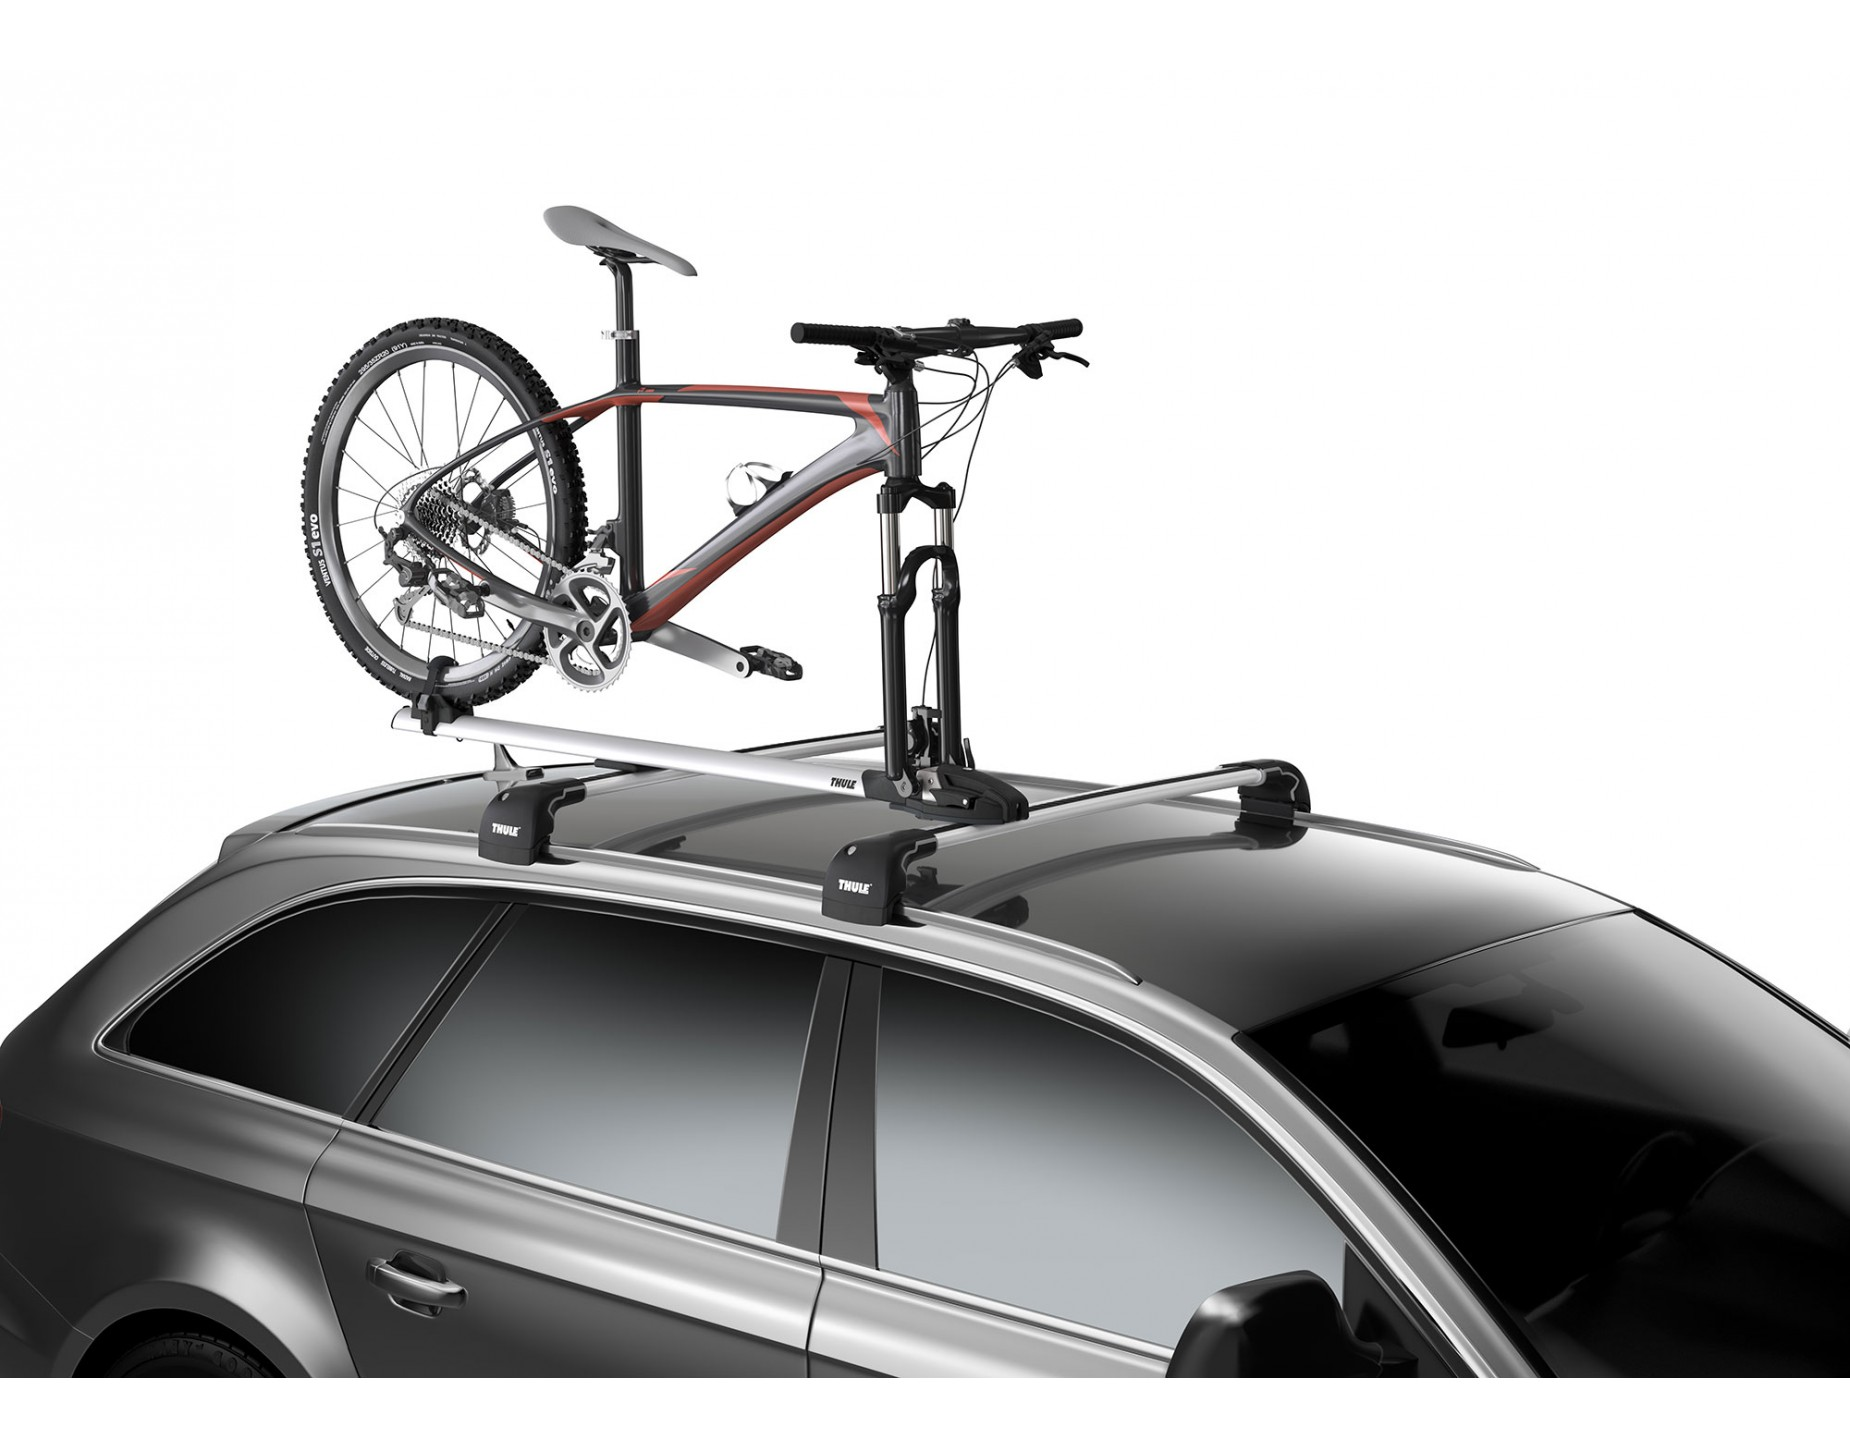 thule thruride 565 roof rack everything you need rose bikes. Black Bedroom Furniture Sets. Home Design Ideas